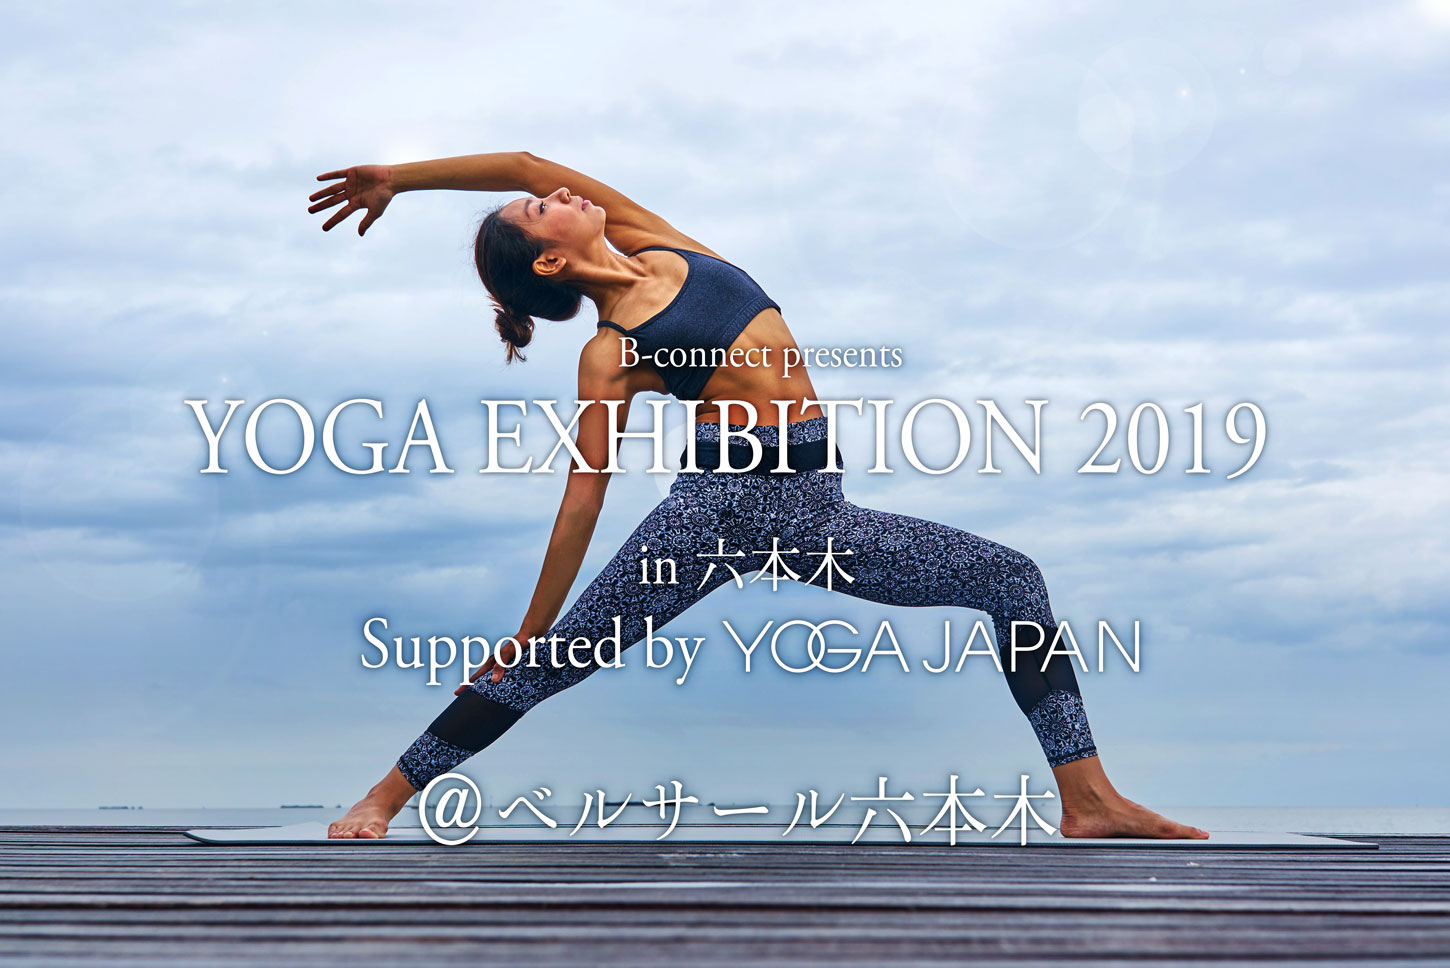 YOGA EXHIBITION